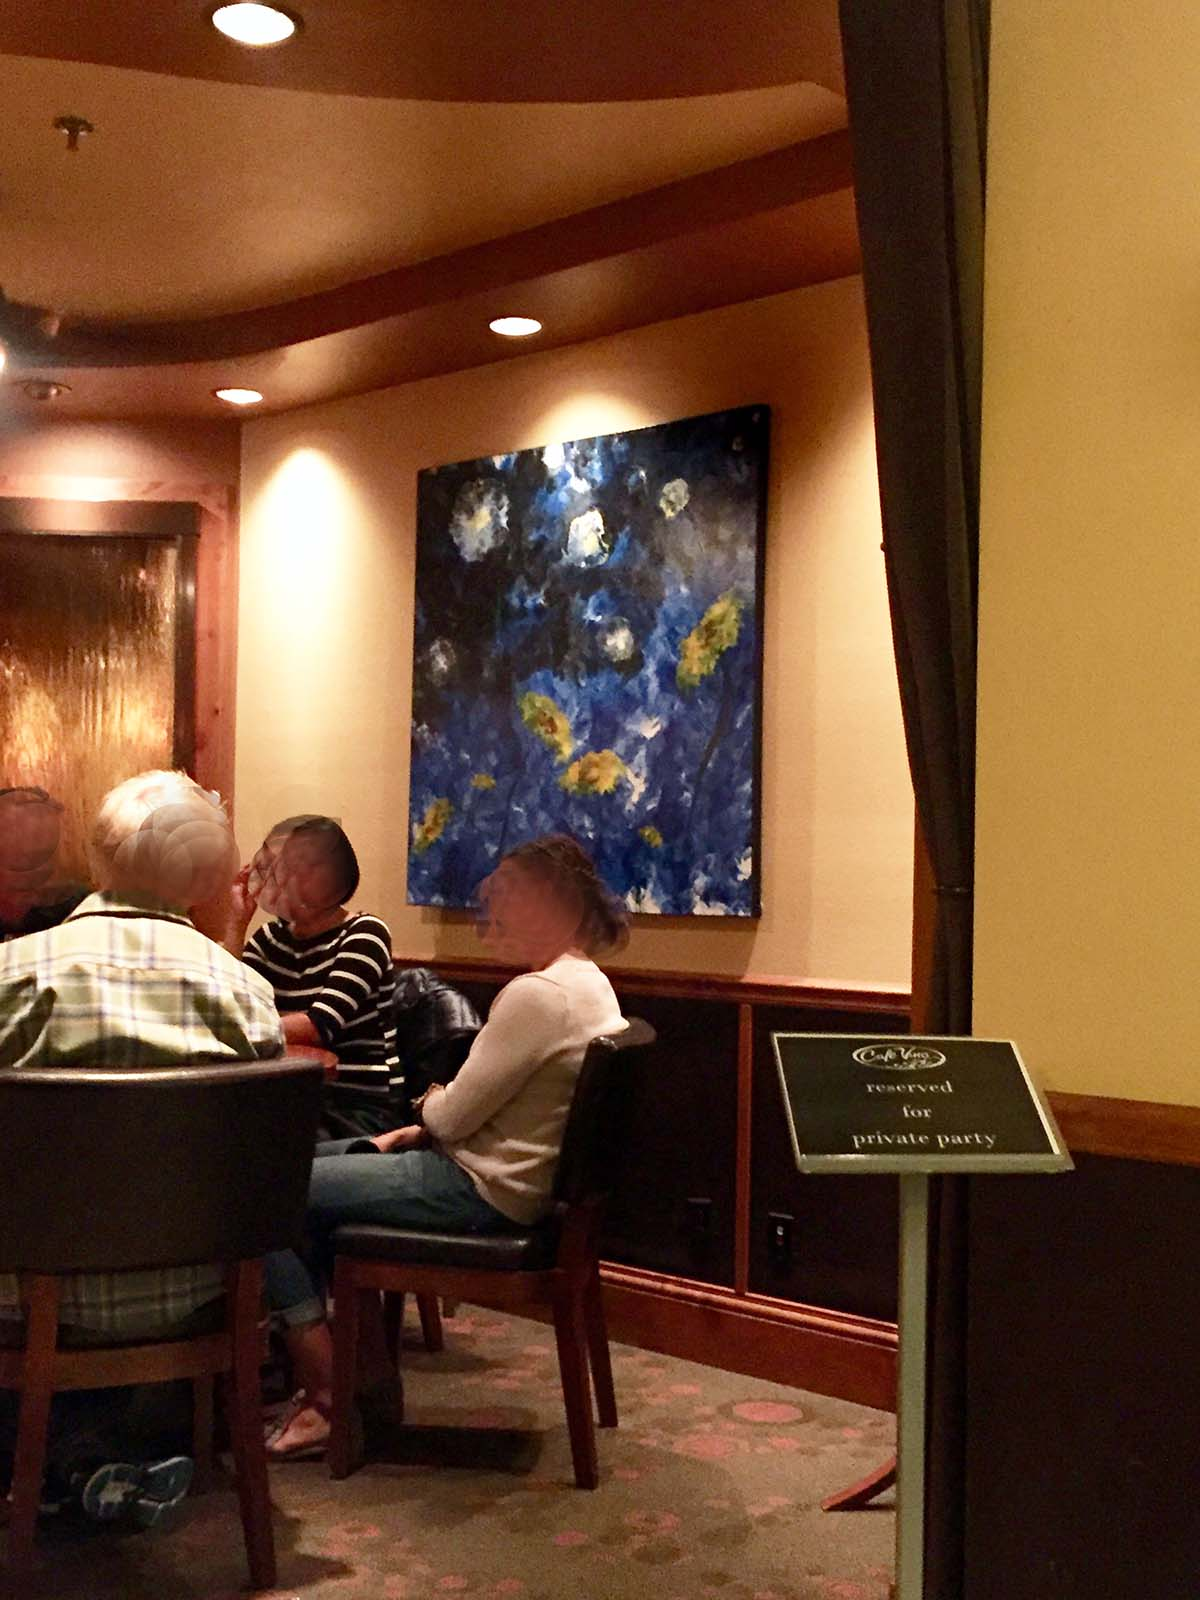 Sweet Dreams - Acrylicmind - Cafe Vinos - Sunflower Surreal Painting Fort Collins